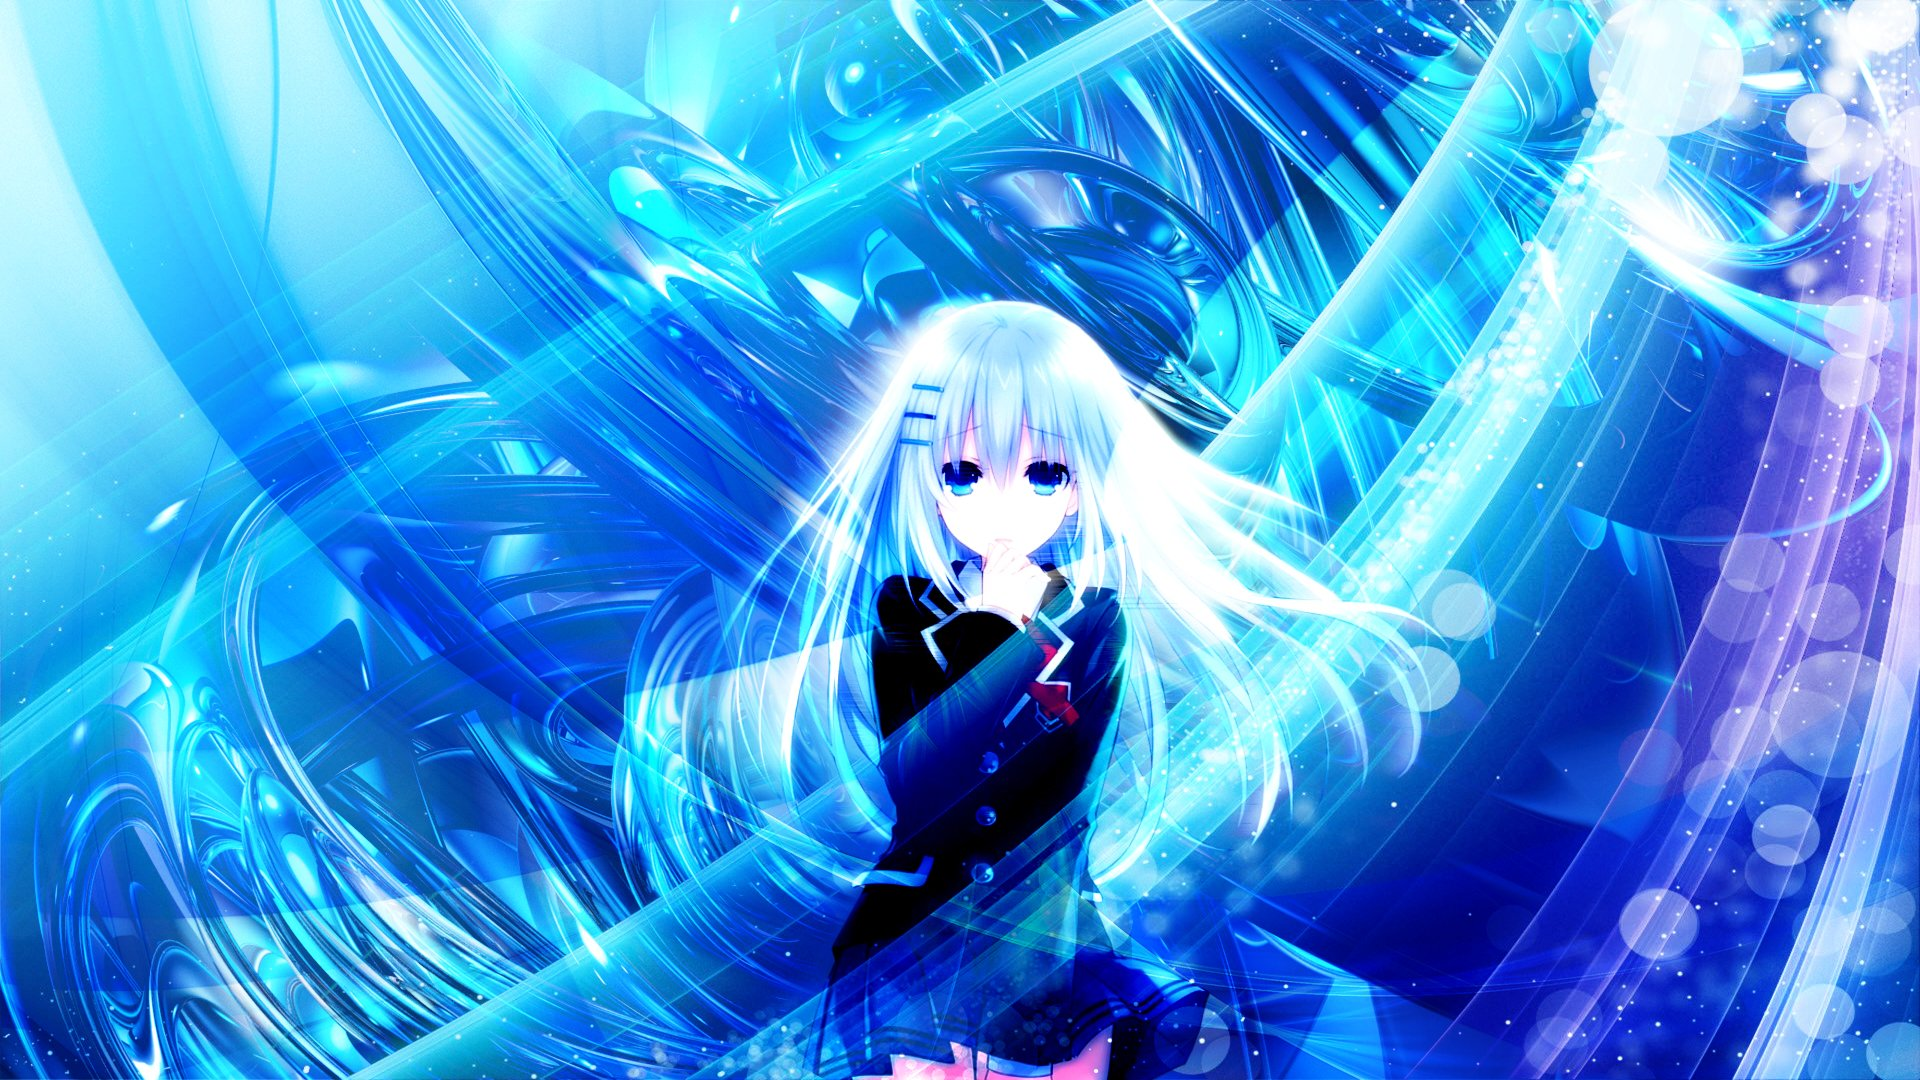 hatsune miku live wallpaper android download